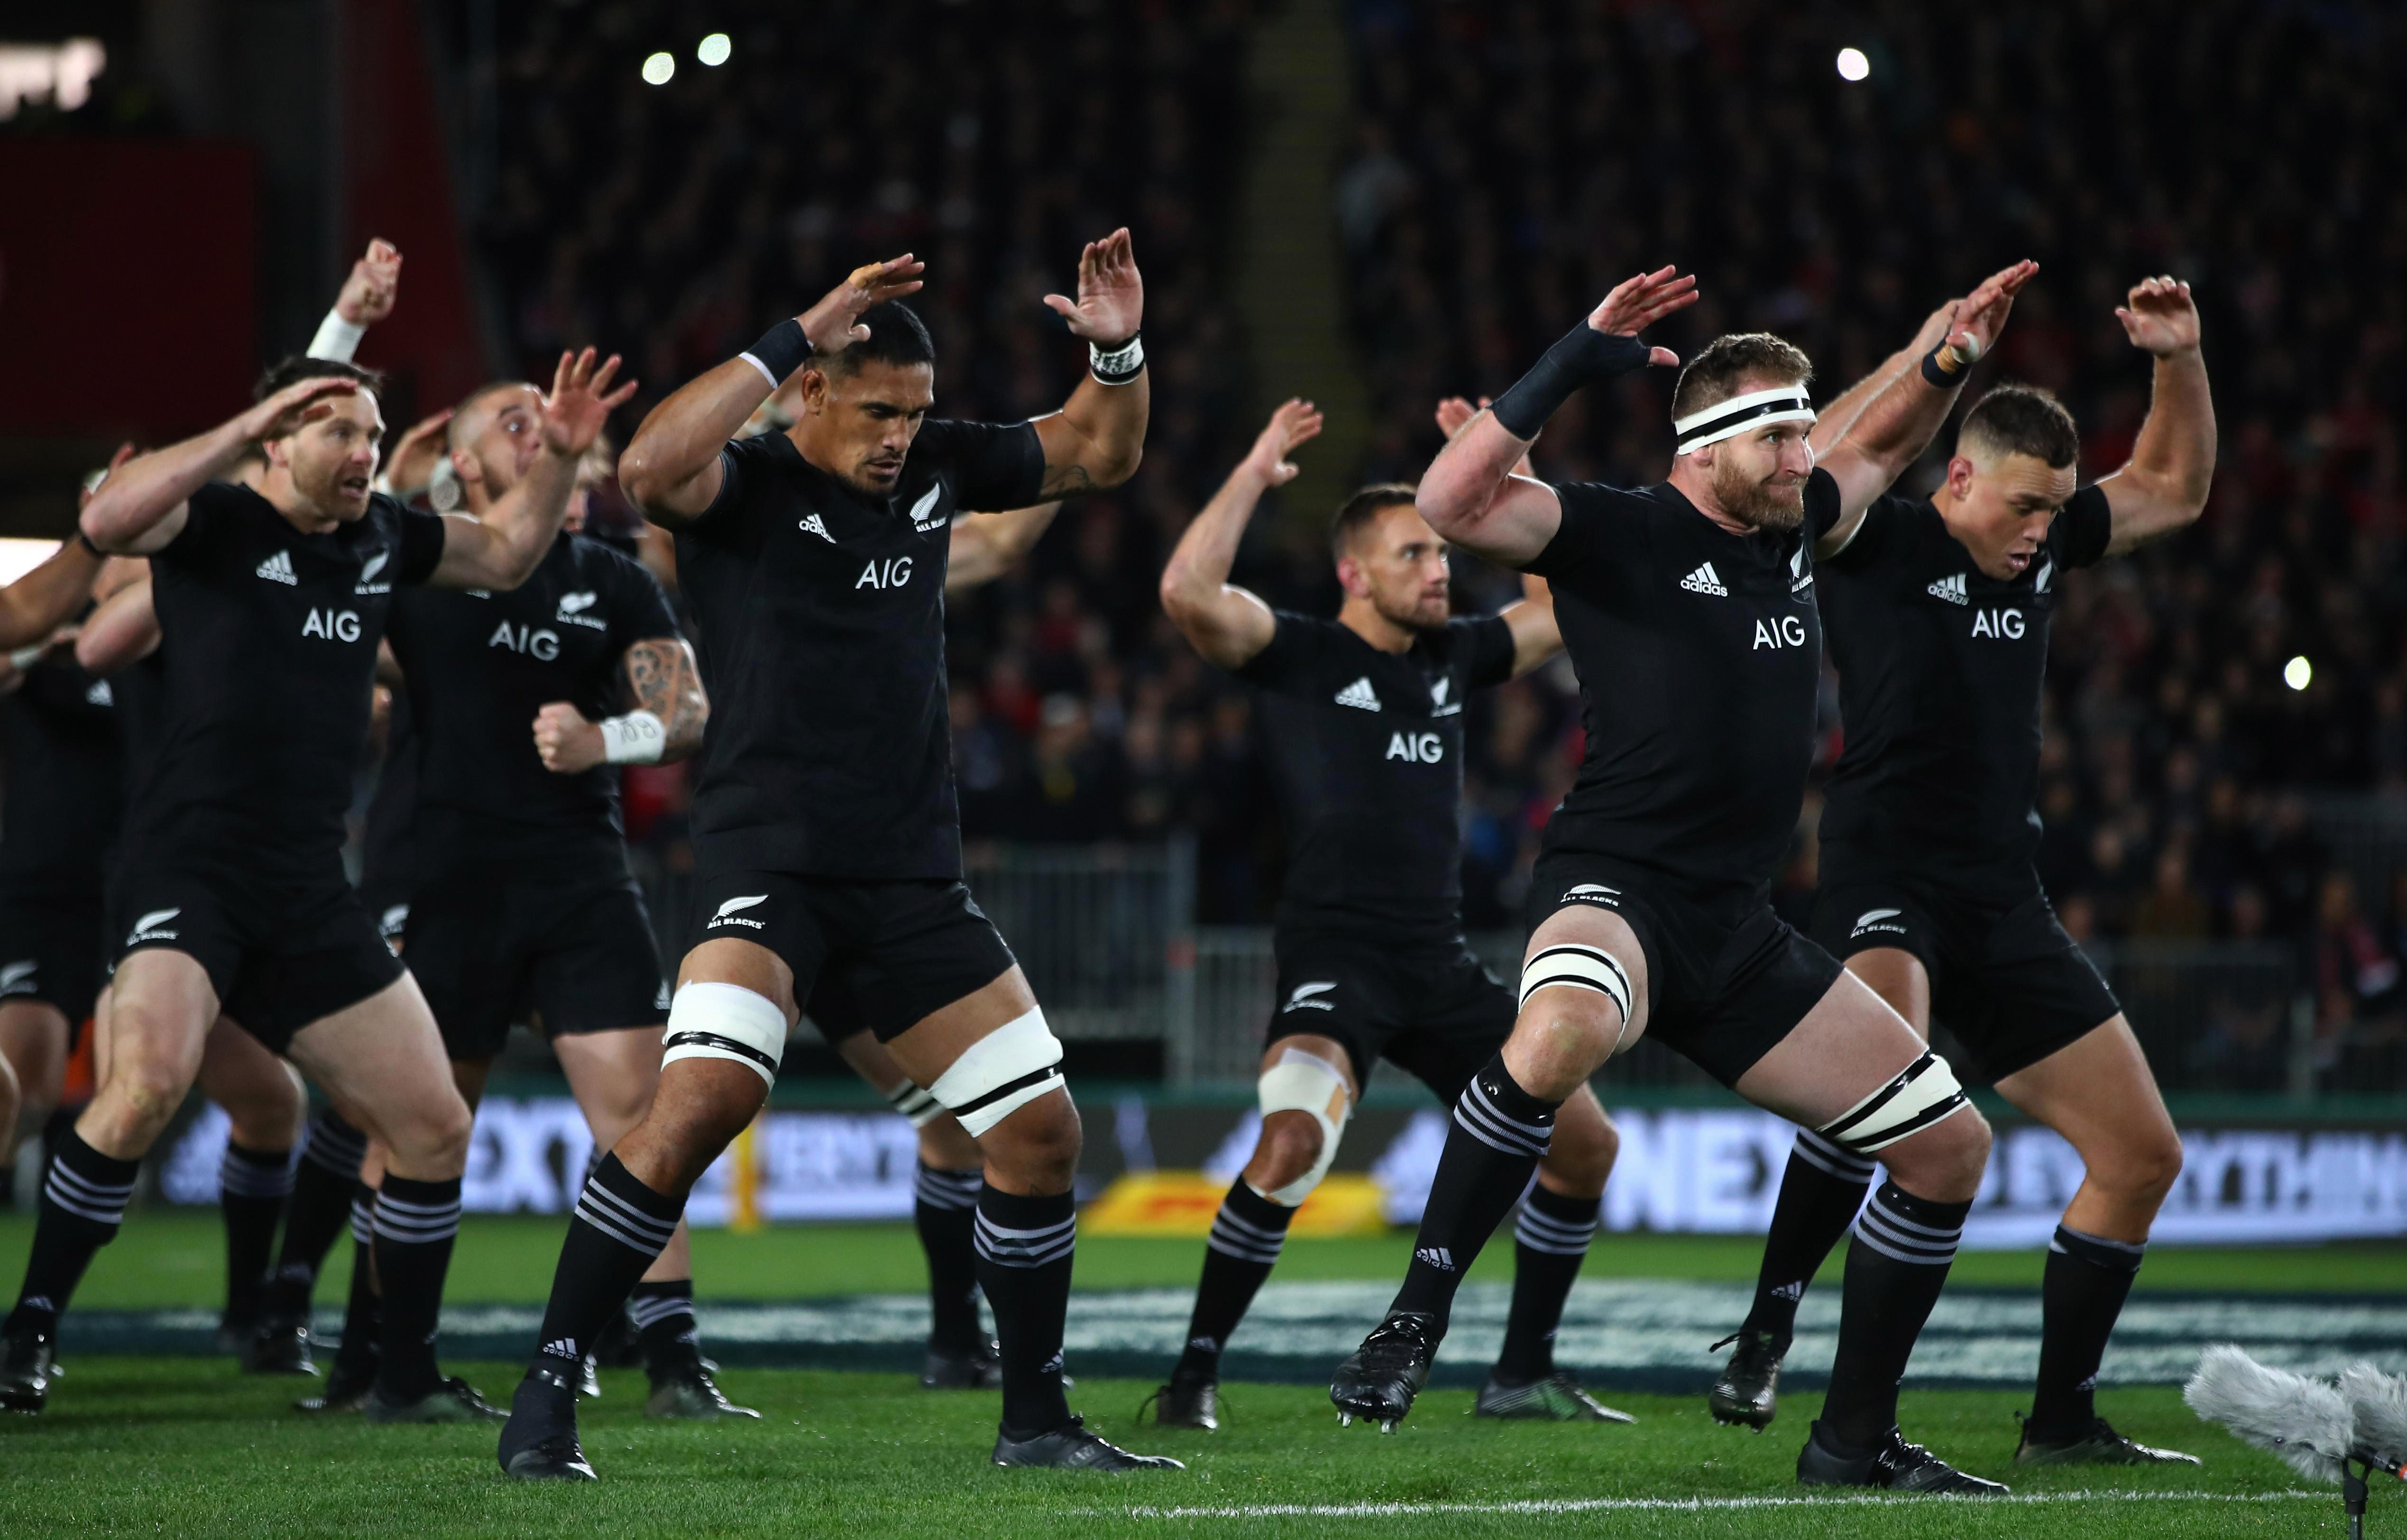 The All Blacks came undone against South Africa last week - but are still favourites for Japan